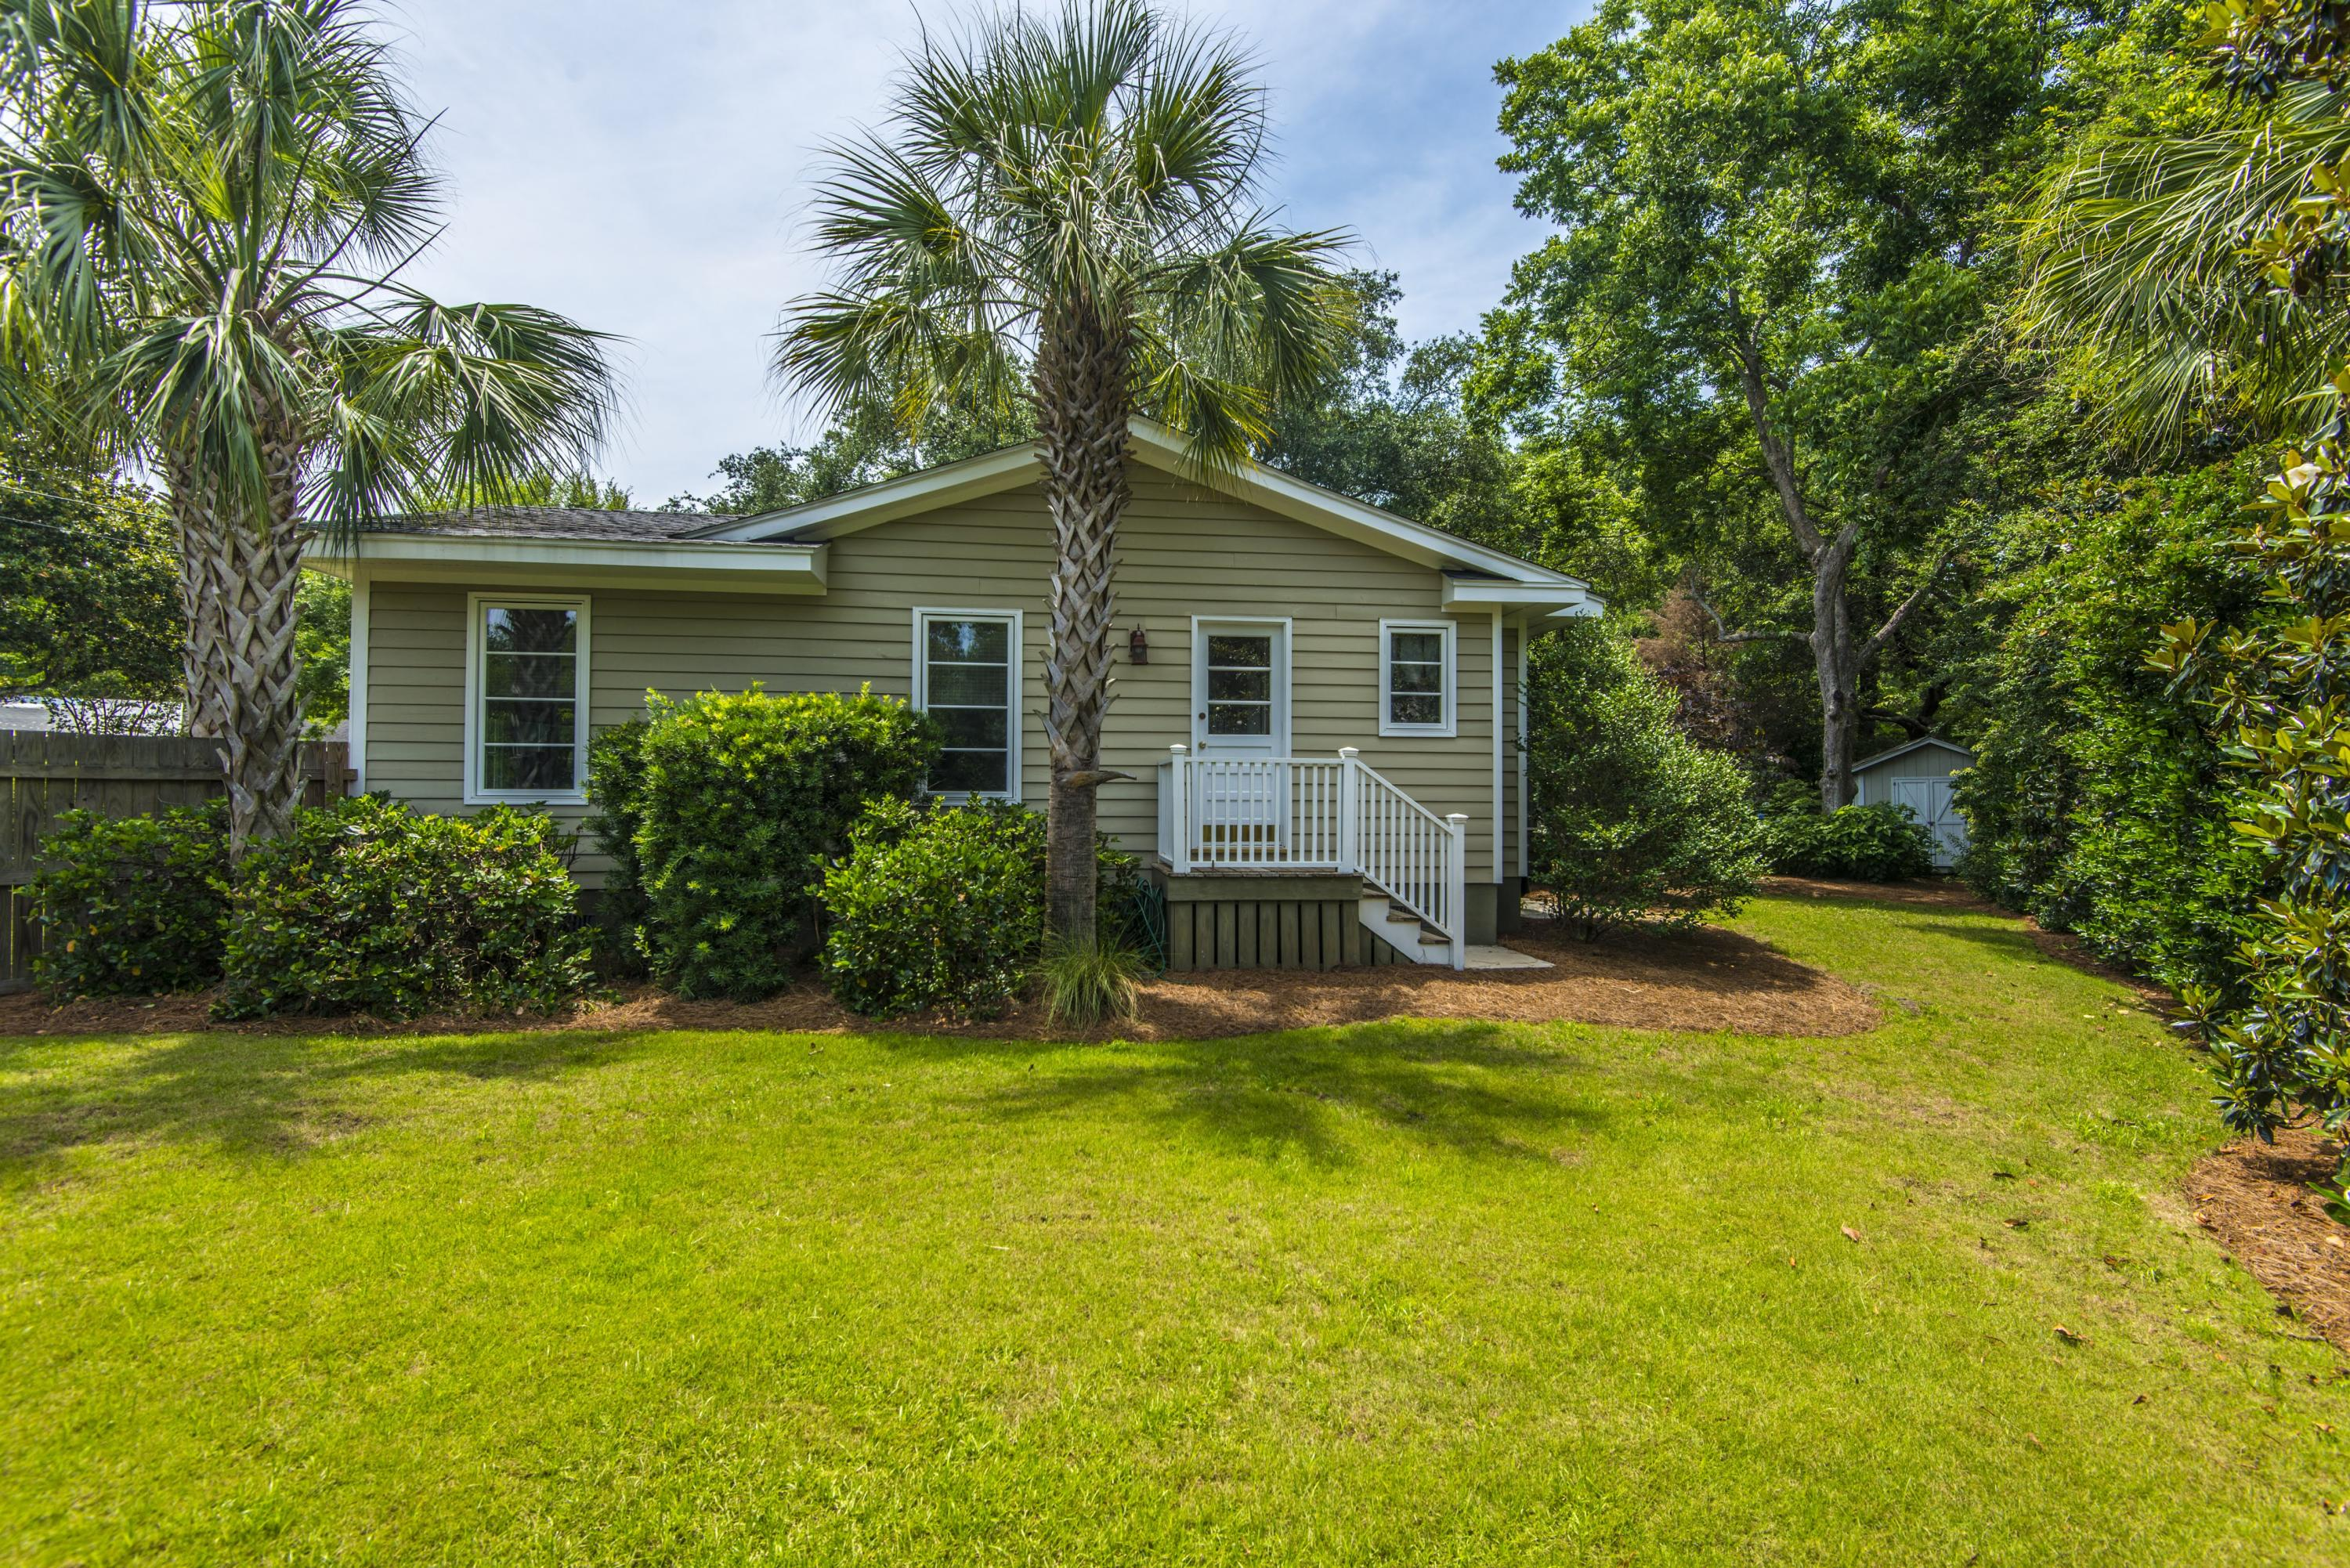 Old Mt Pleasant Homes For Sale - 1498 Pocahontas, Mount Pleasant, SC - 47